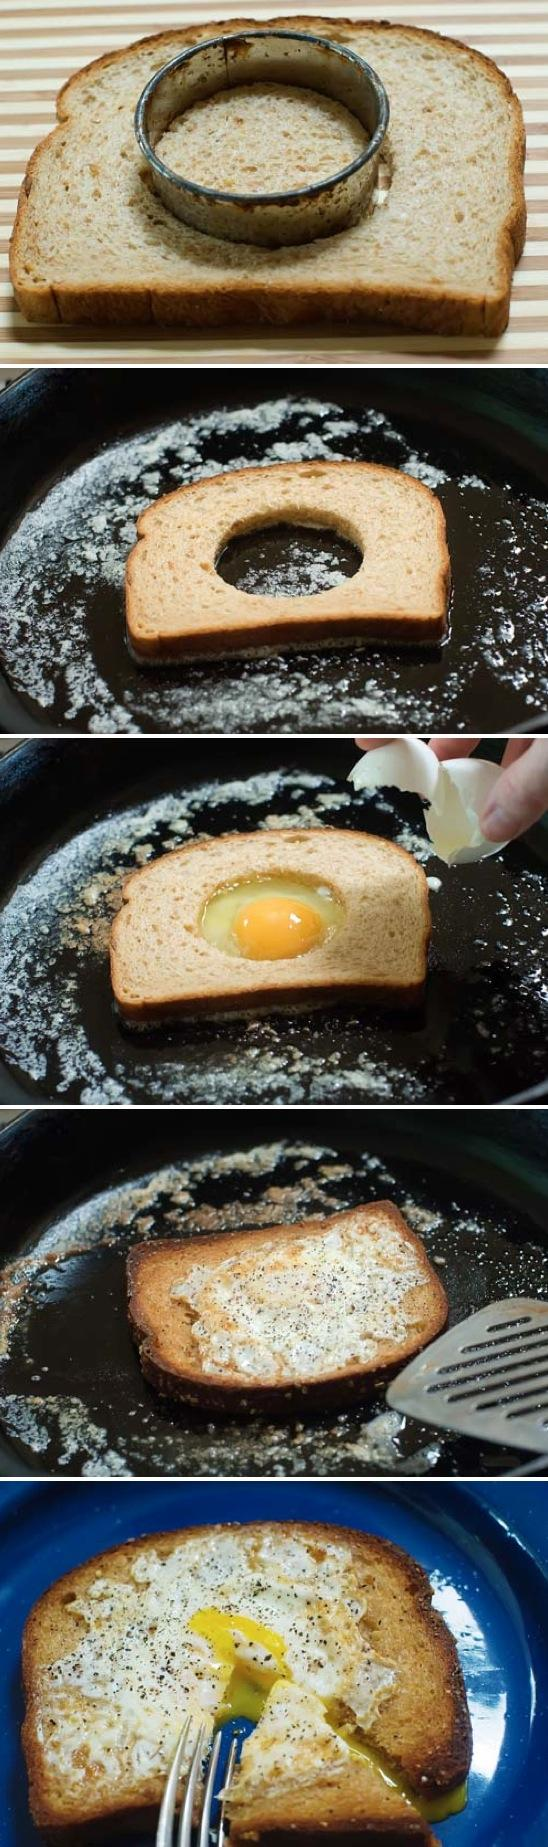 Egg In A Hole Food Pix | Recipe by Picture #253870 on Wookmark